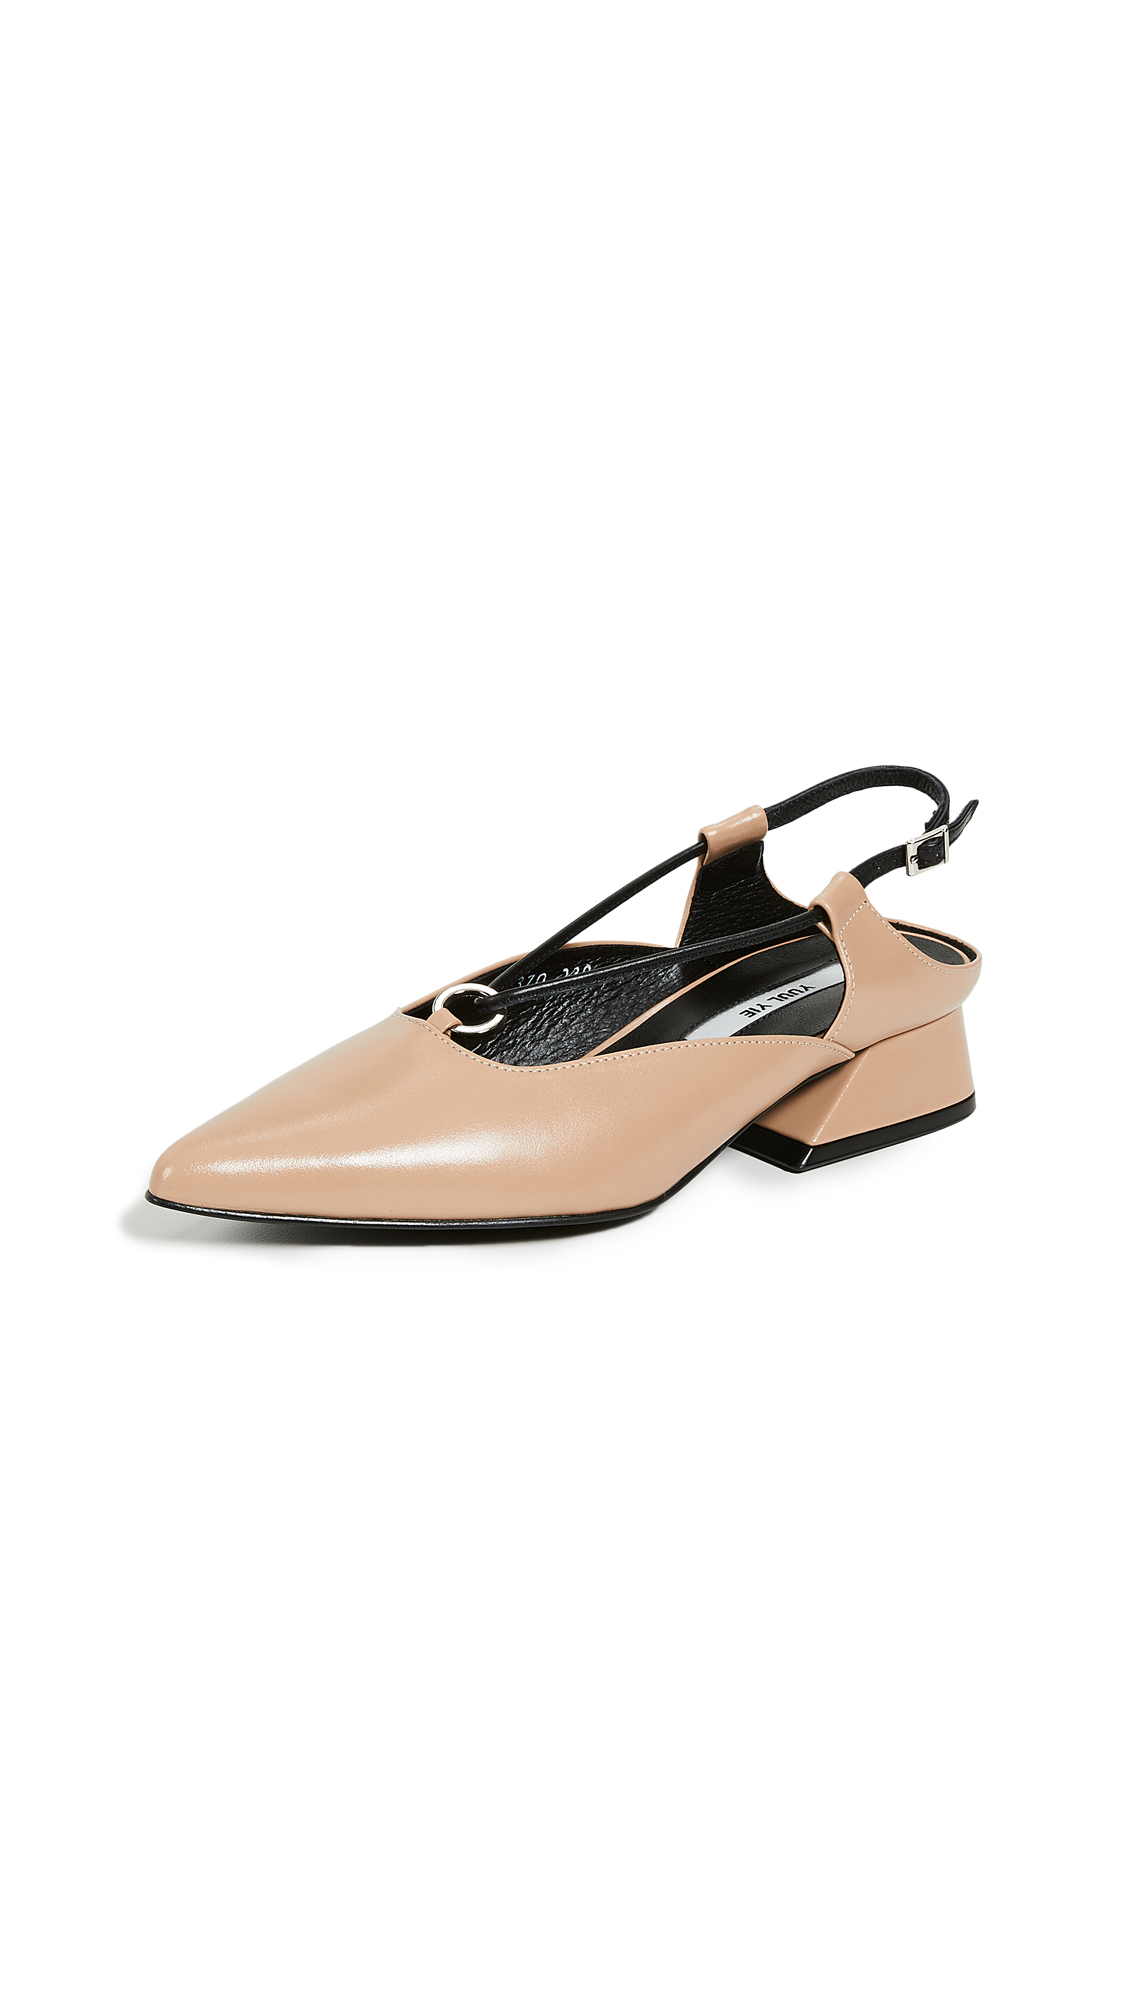 Yuul Yie Sling Back Y-Heels - Light Beige/Black